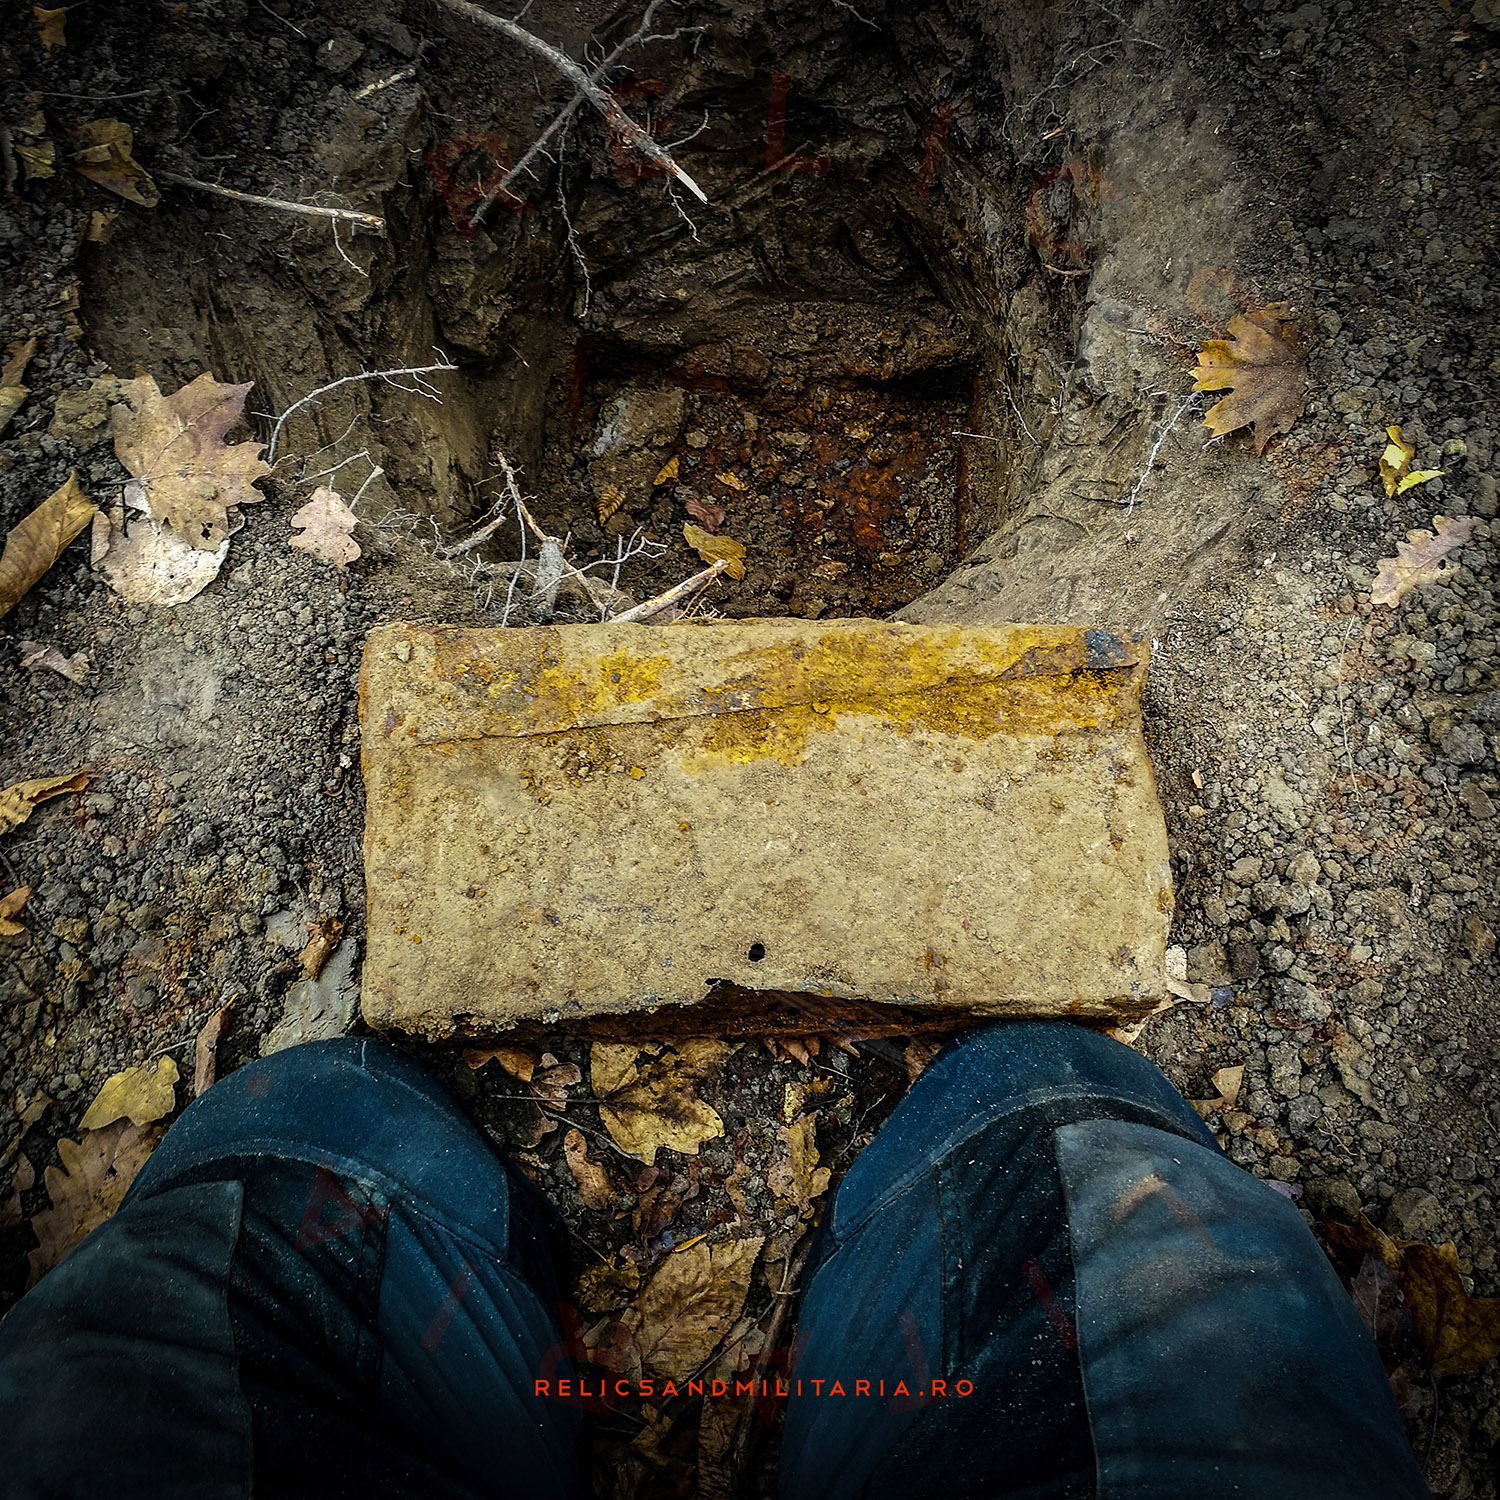 ZB-53 VZ-53 machine gun empty ammo box found metal detecting in Romania